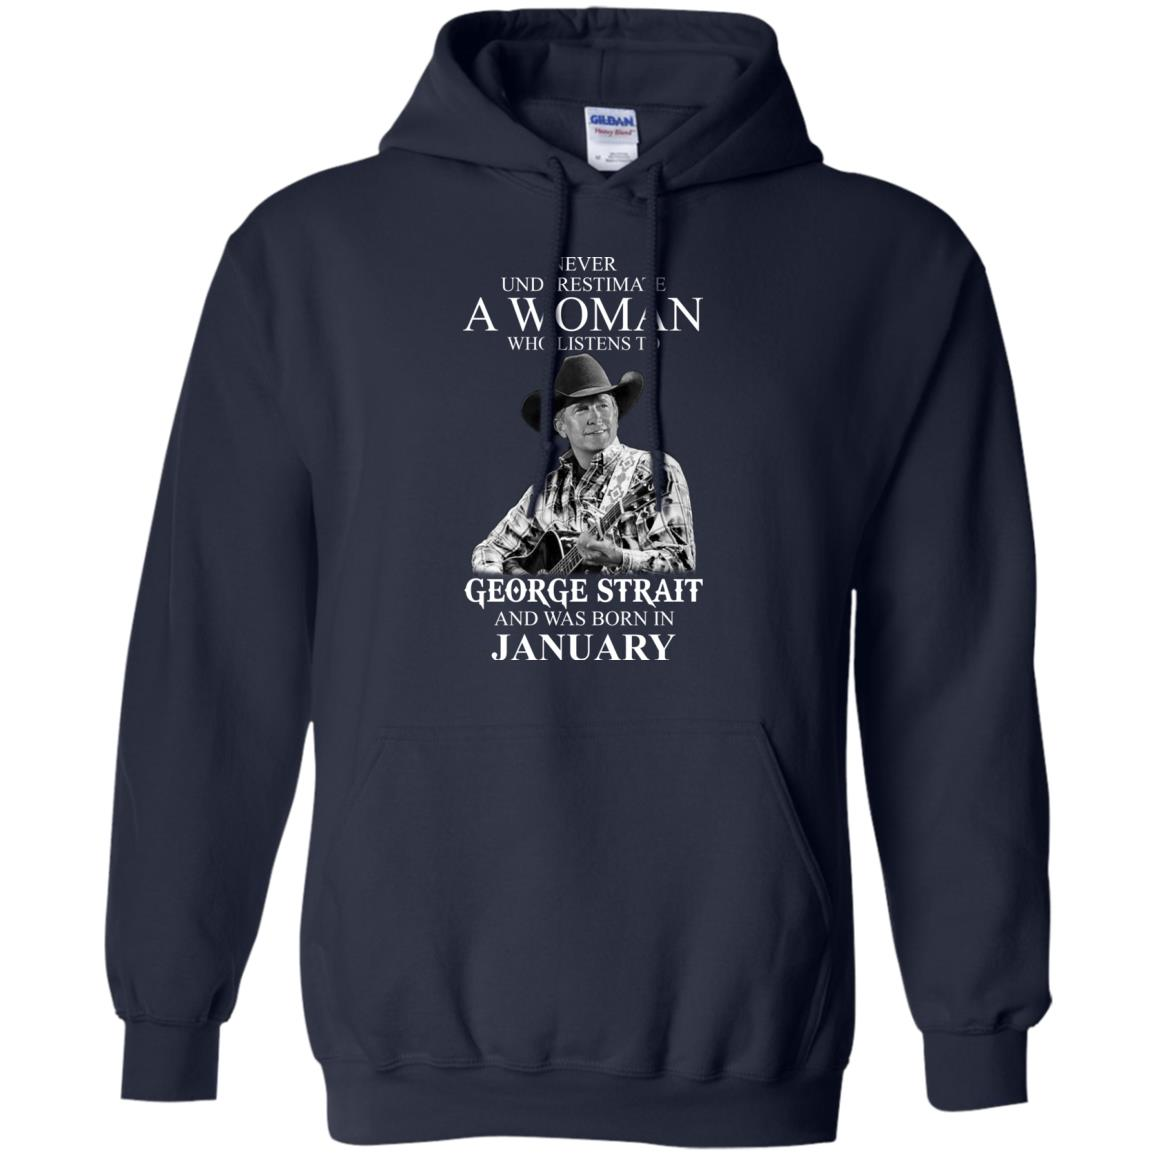 image 463 - Never Underestimate A Woman Who Listens To George Strait And Was Born In January shirt